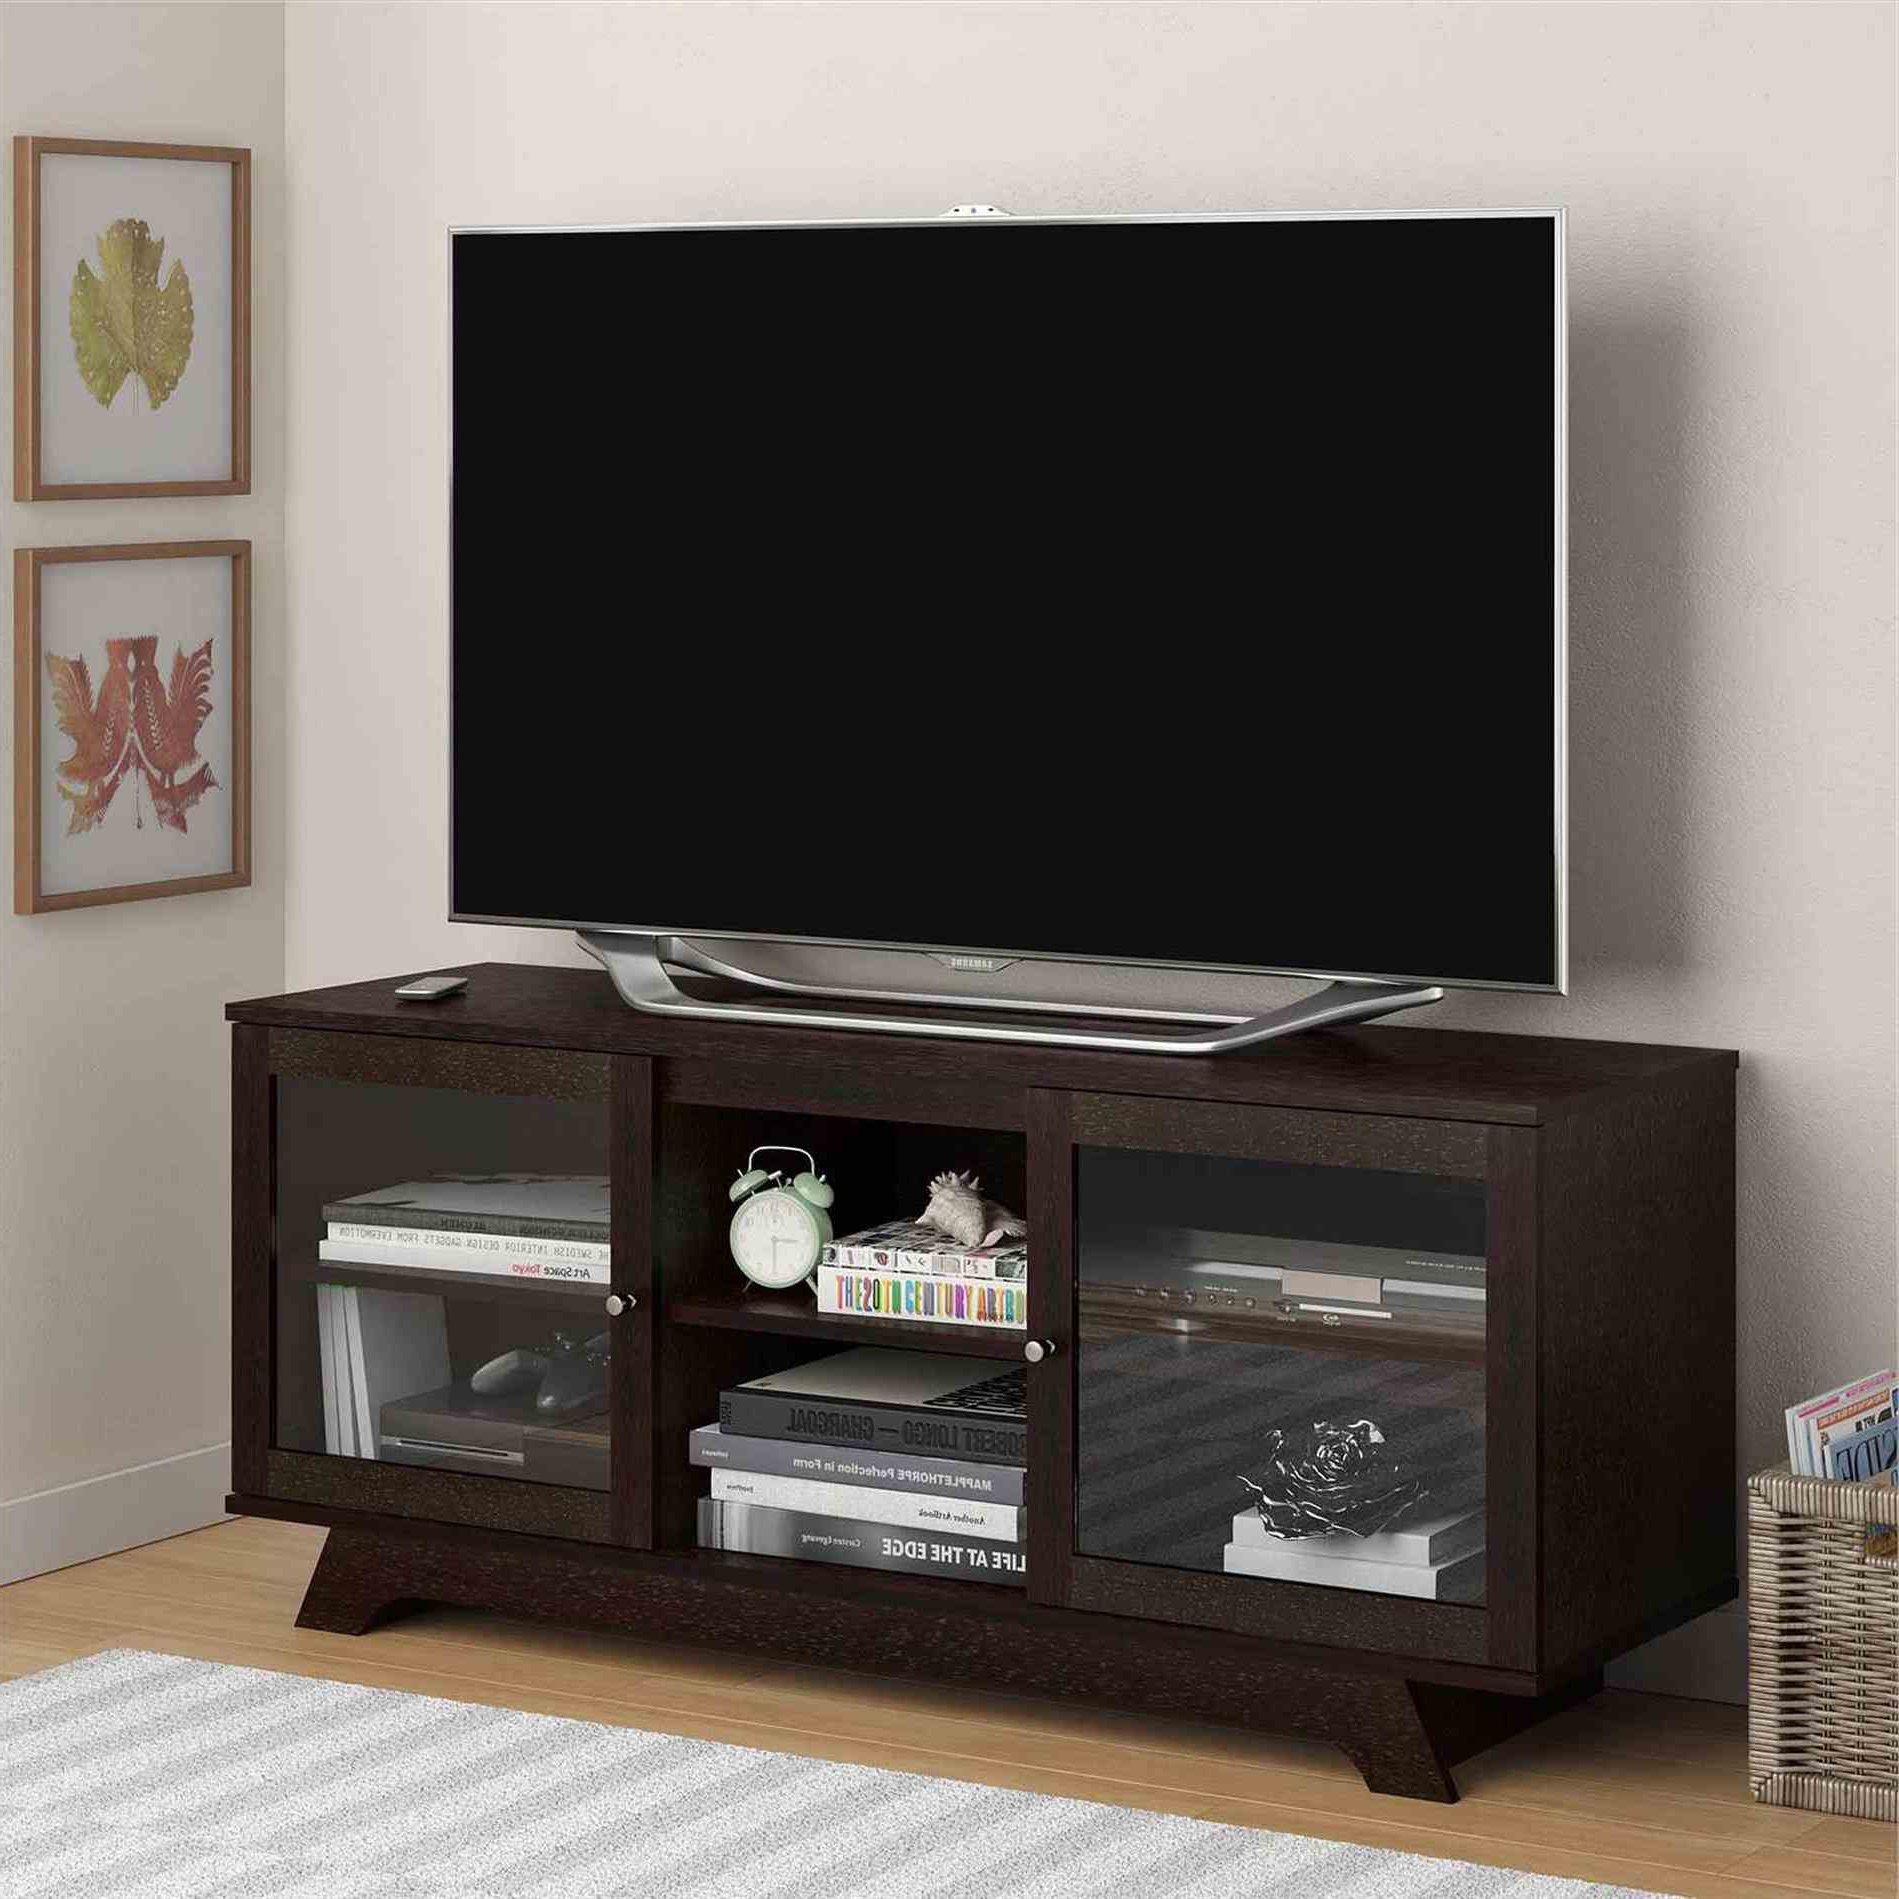 Draper 62 Inch Tv Stands Intended For Well Known Oak Entertainment Center Wall Units Rc Willey Sale Delivery Draper (Gallery 10 of 20)